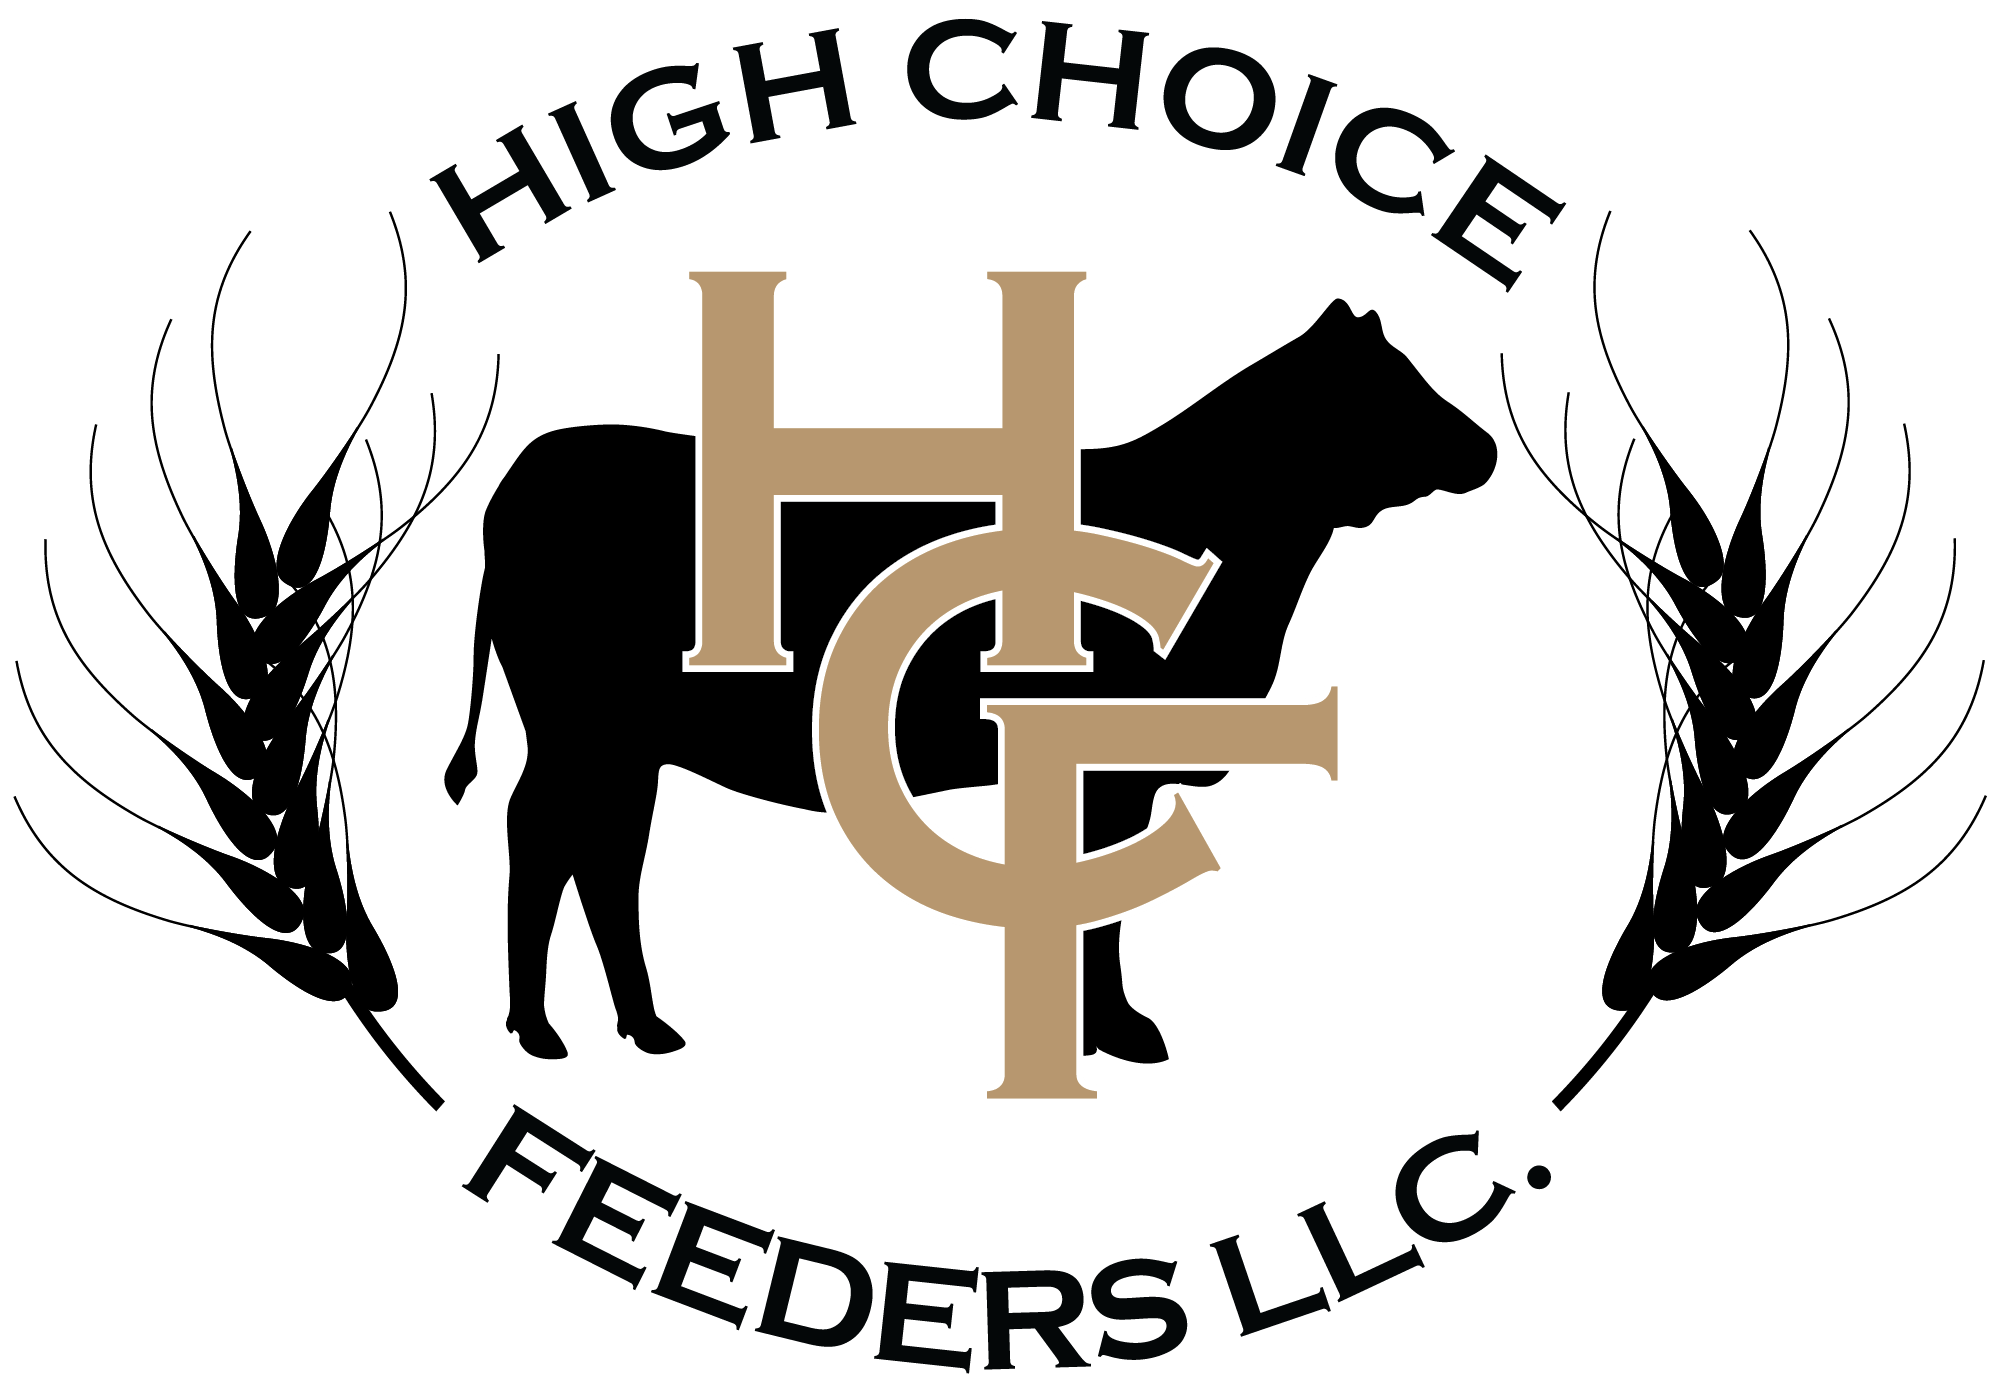 High Choice - Logo (GOLD HCF) CMYK - 11-10-20